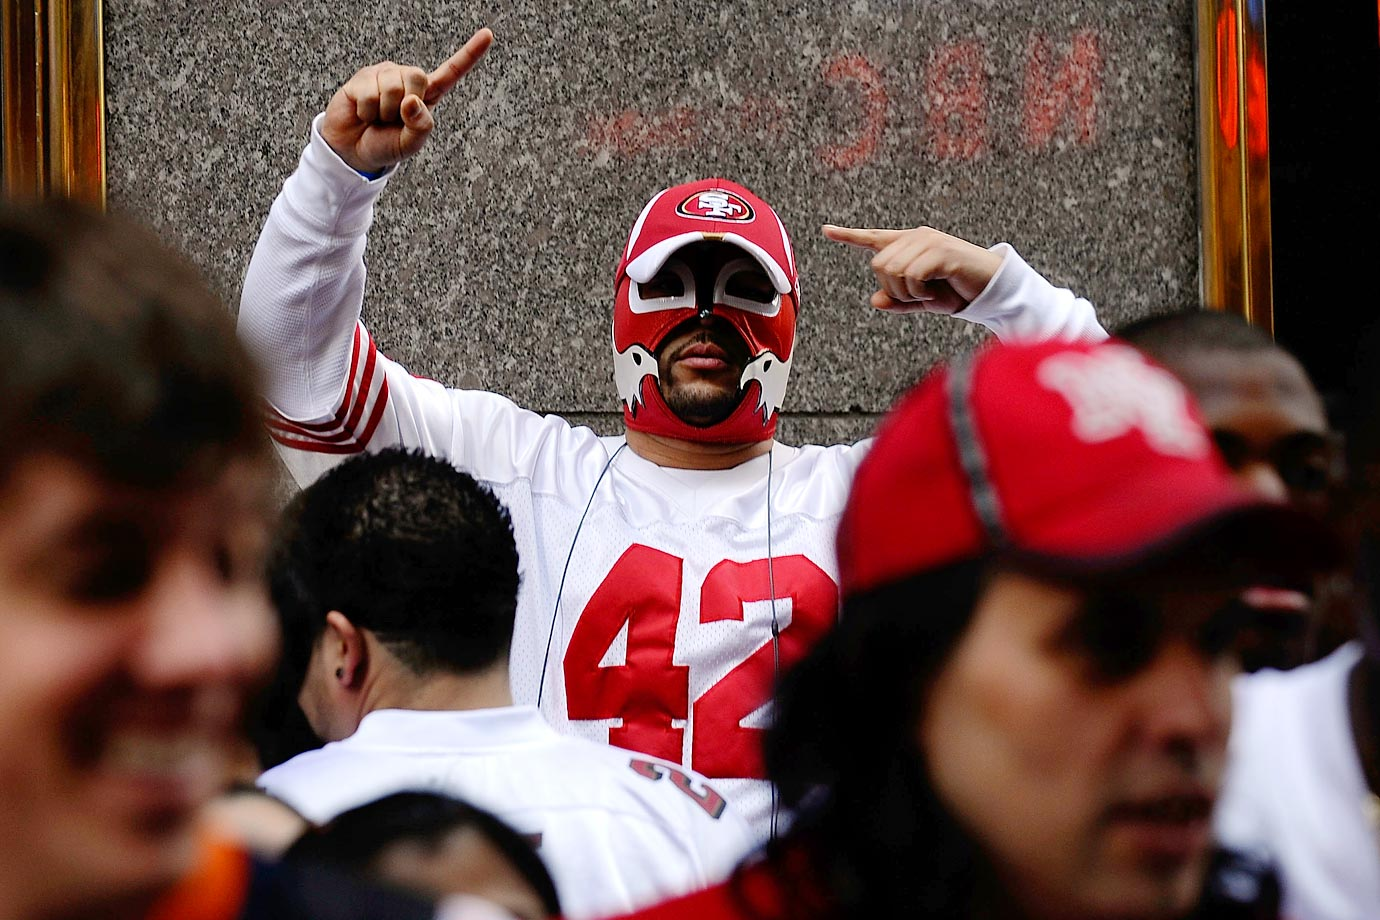 San Francisco 49ers fan in 2009.